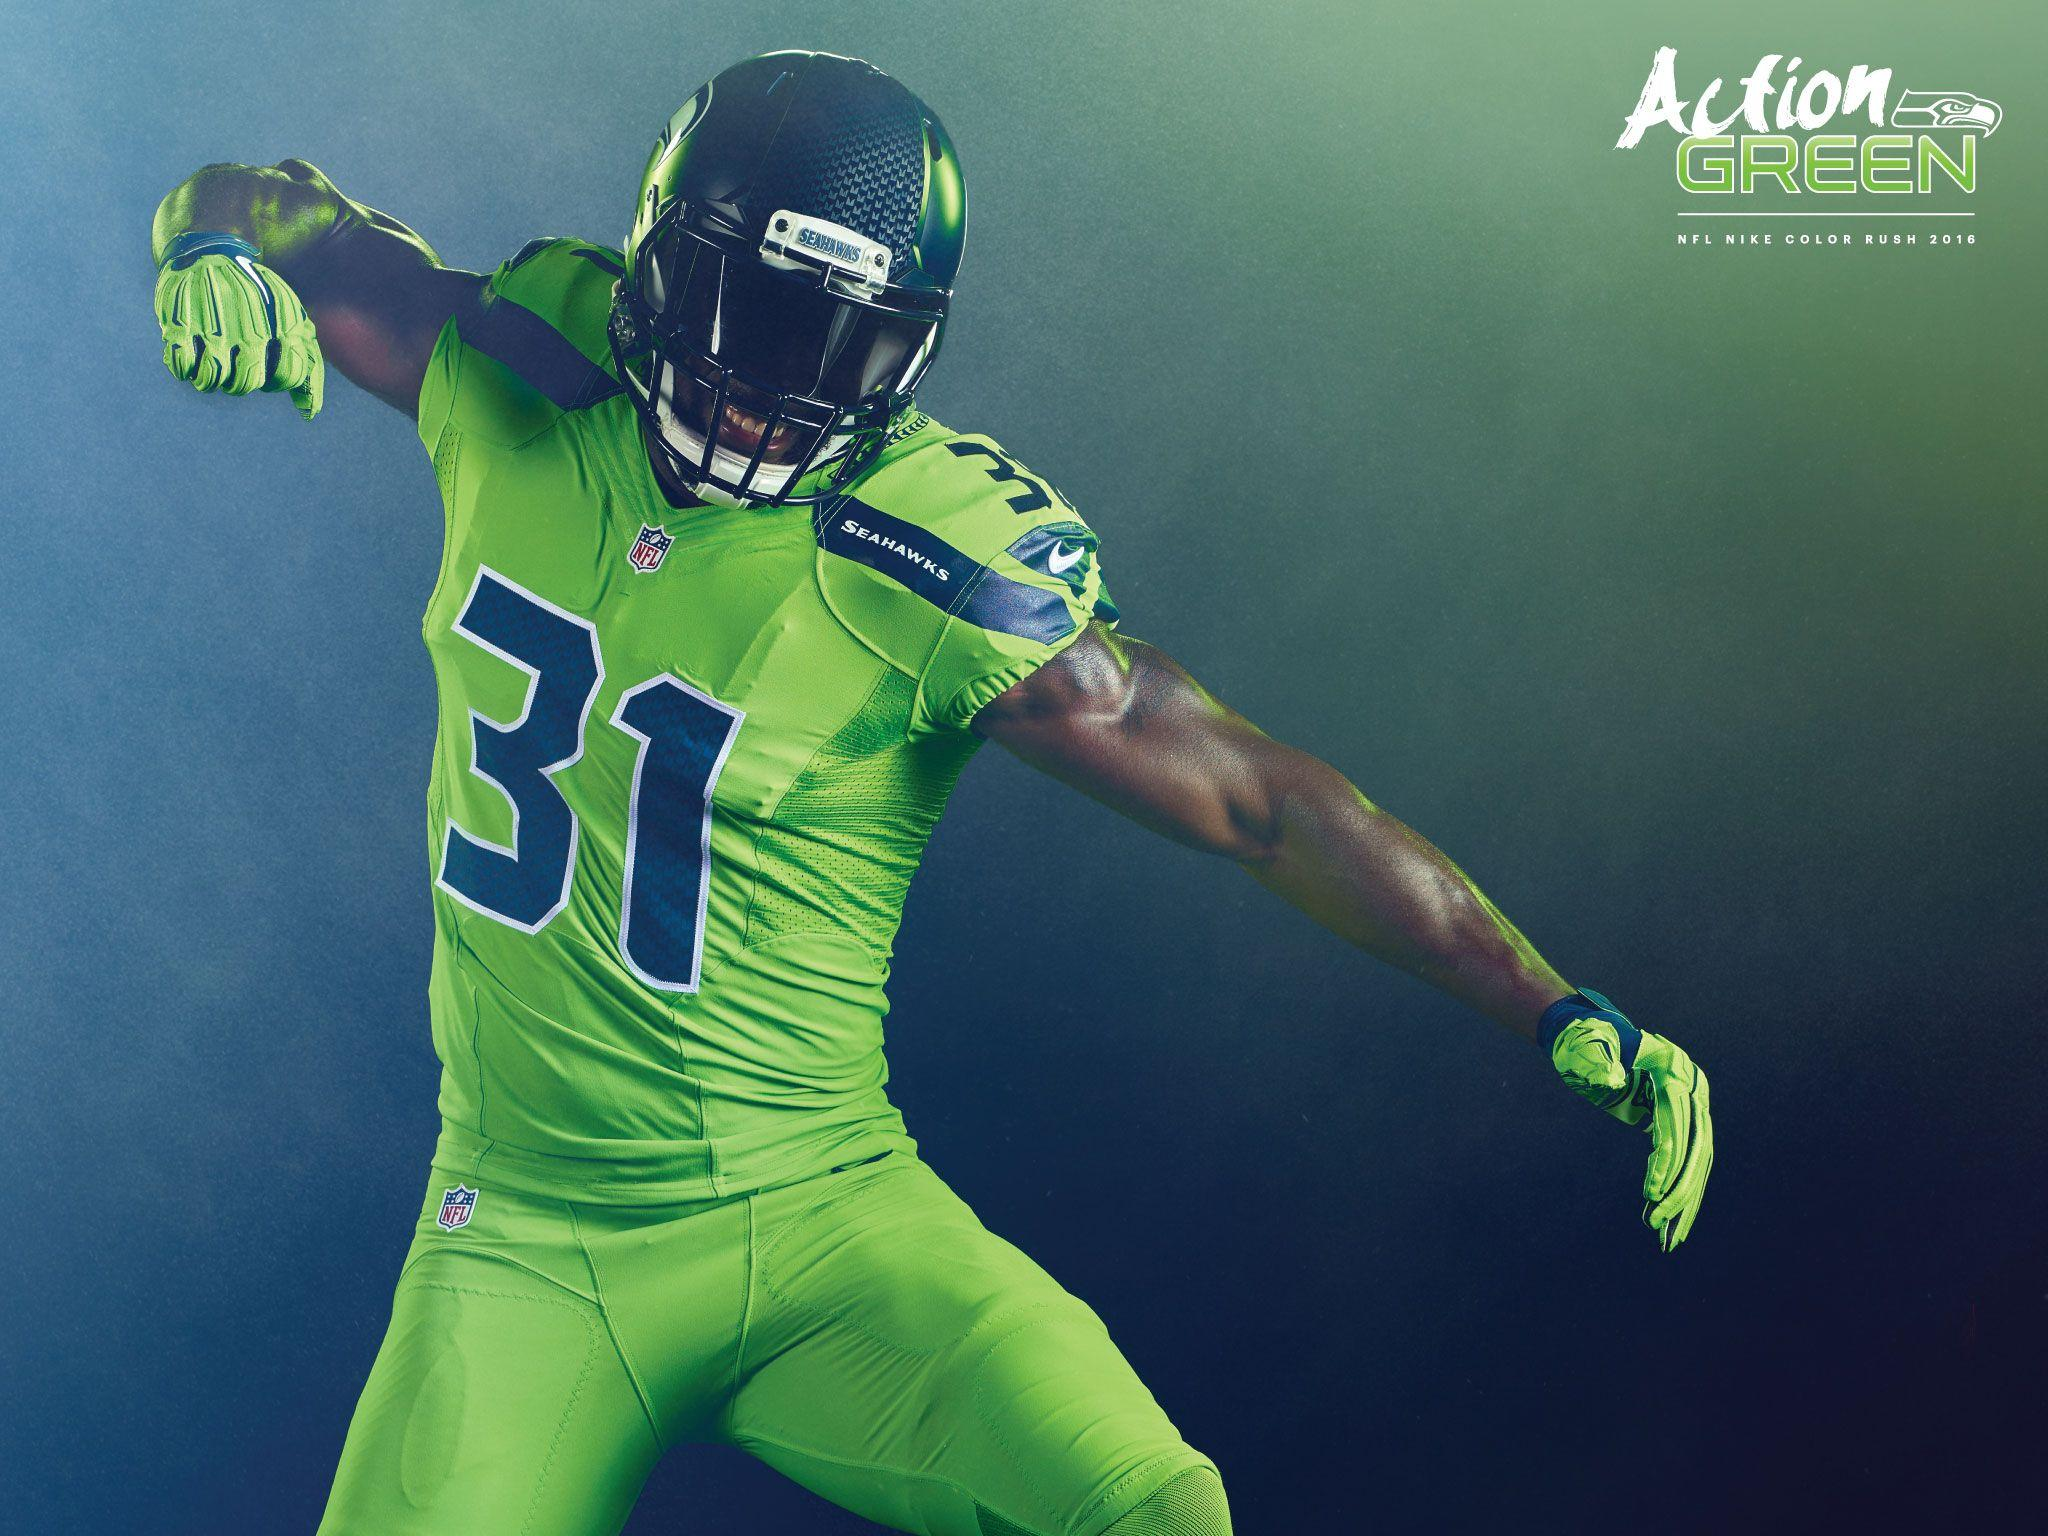 Kam Chancellor Wallpapers Wallpaper Cave